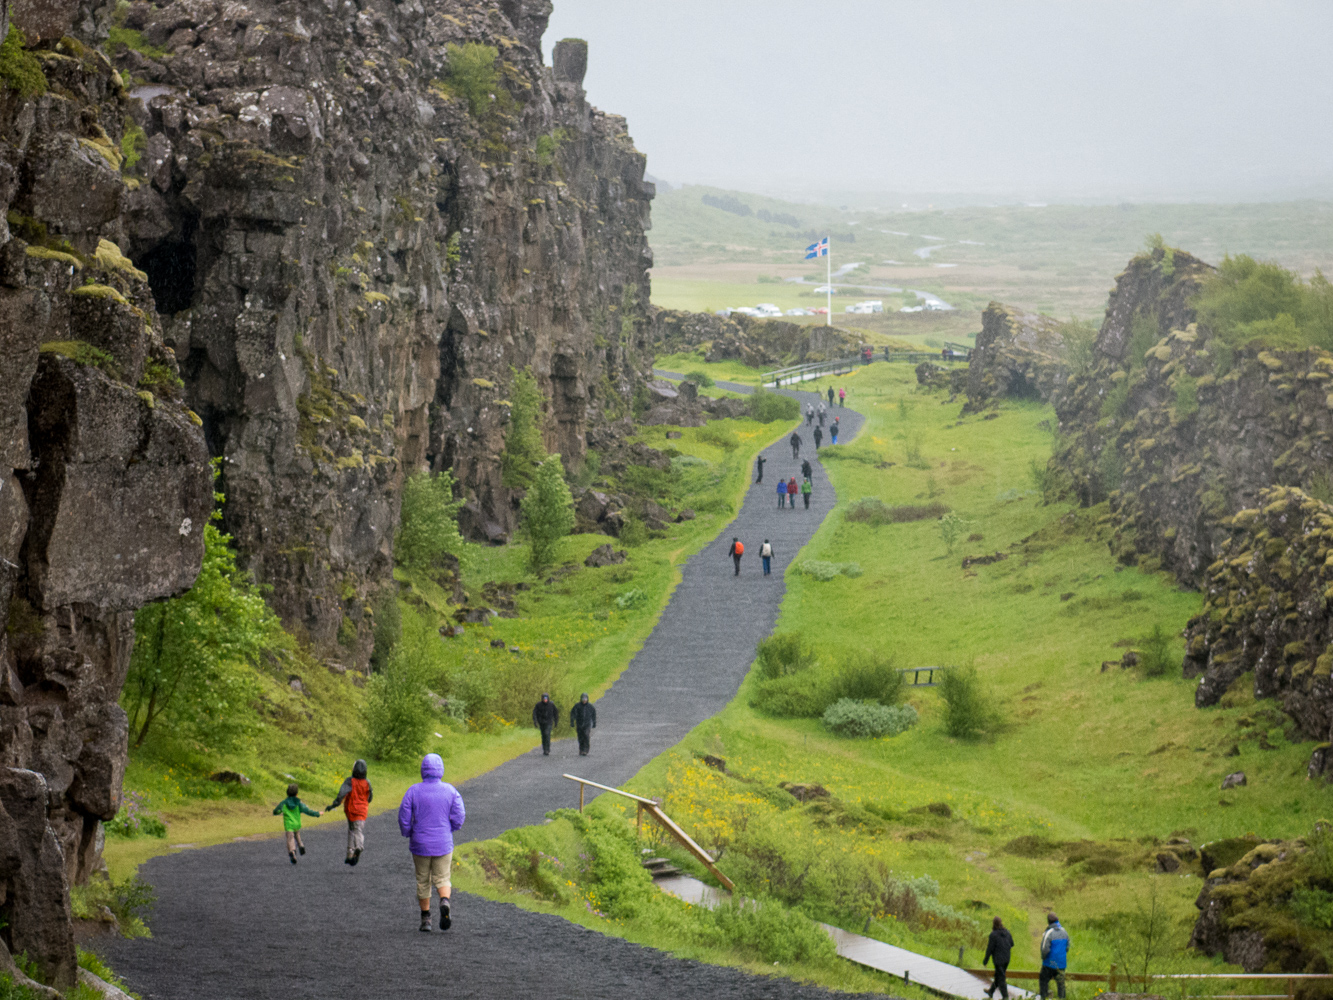 people walking on paved path in the mountains